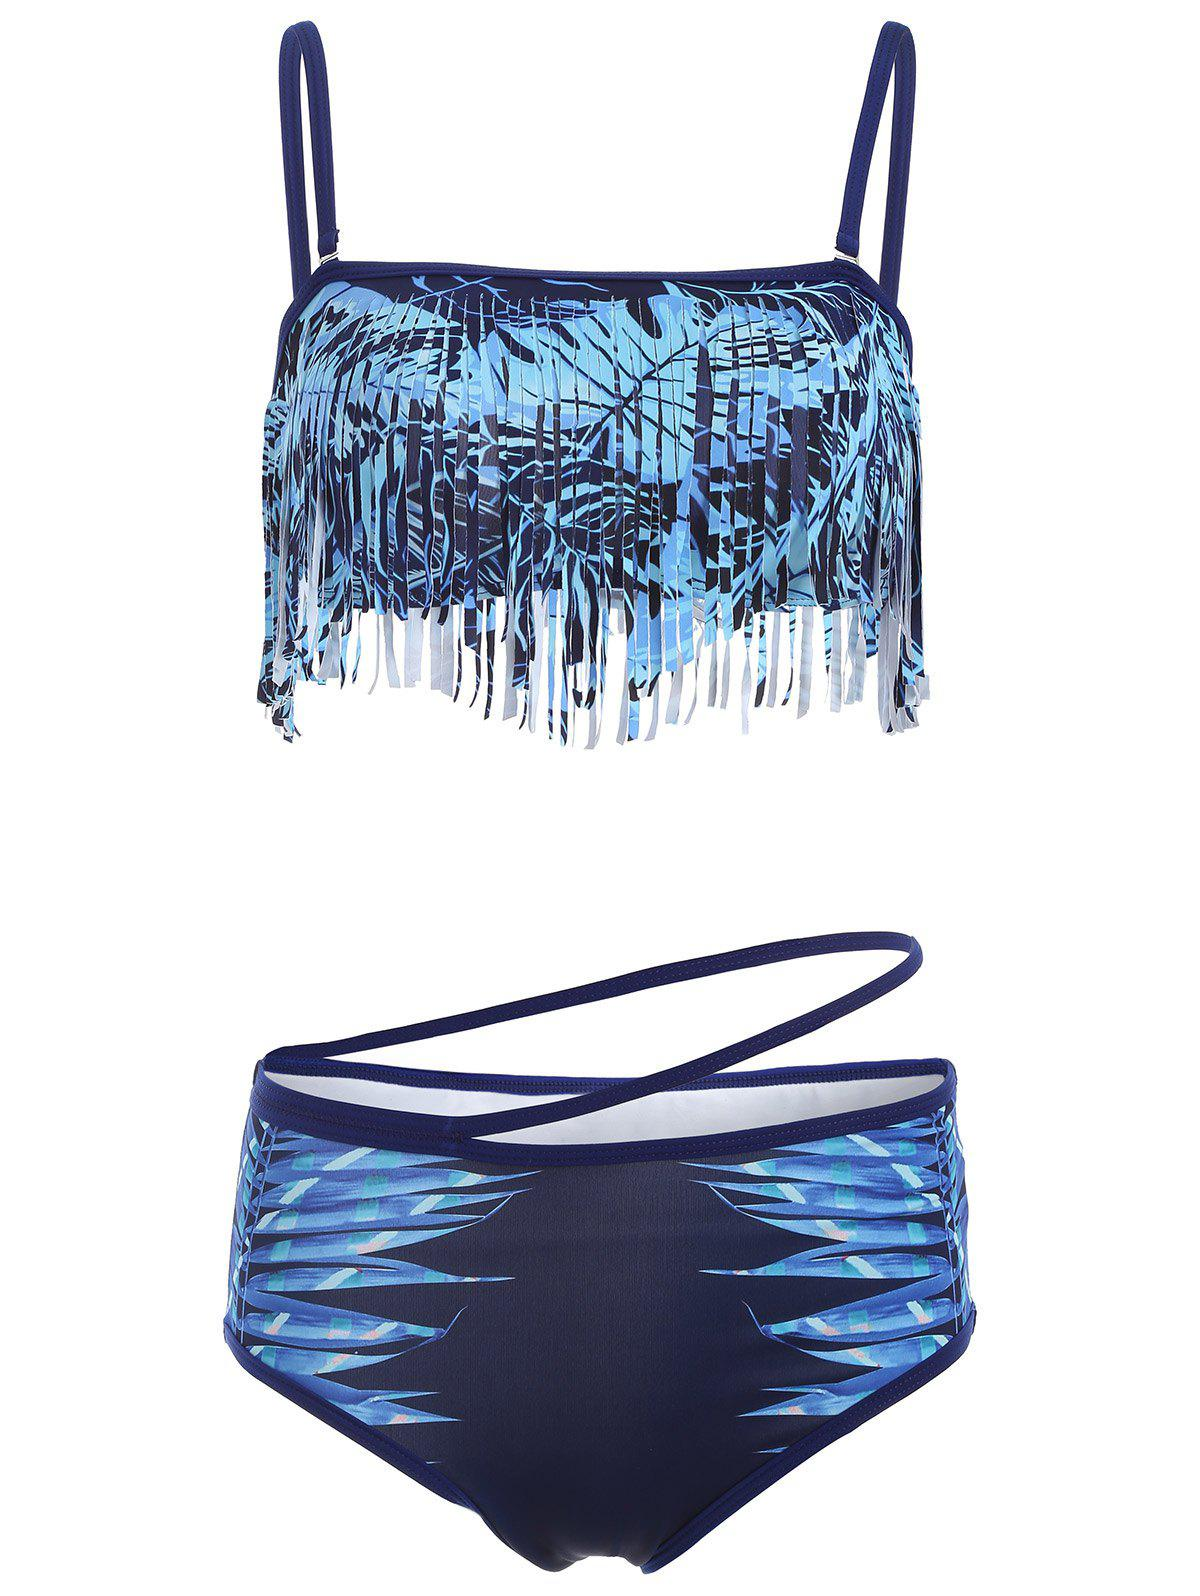 Spaghetti Strap Fringed Leaves Print Bikini Set - PURPLISH BLUE M